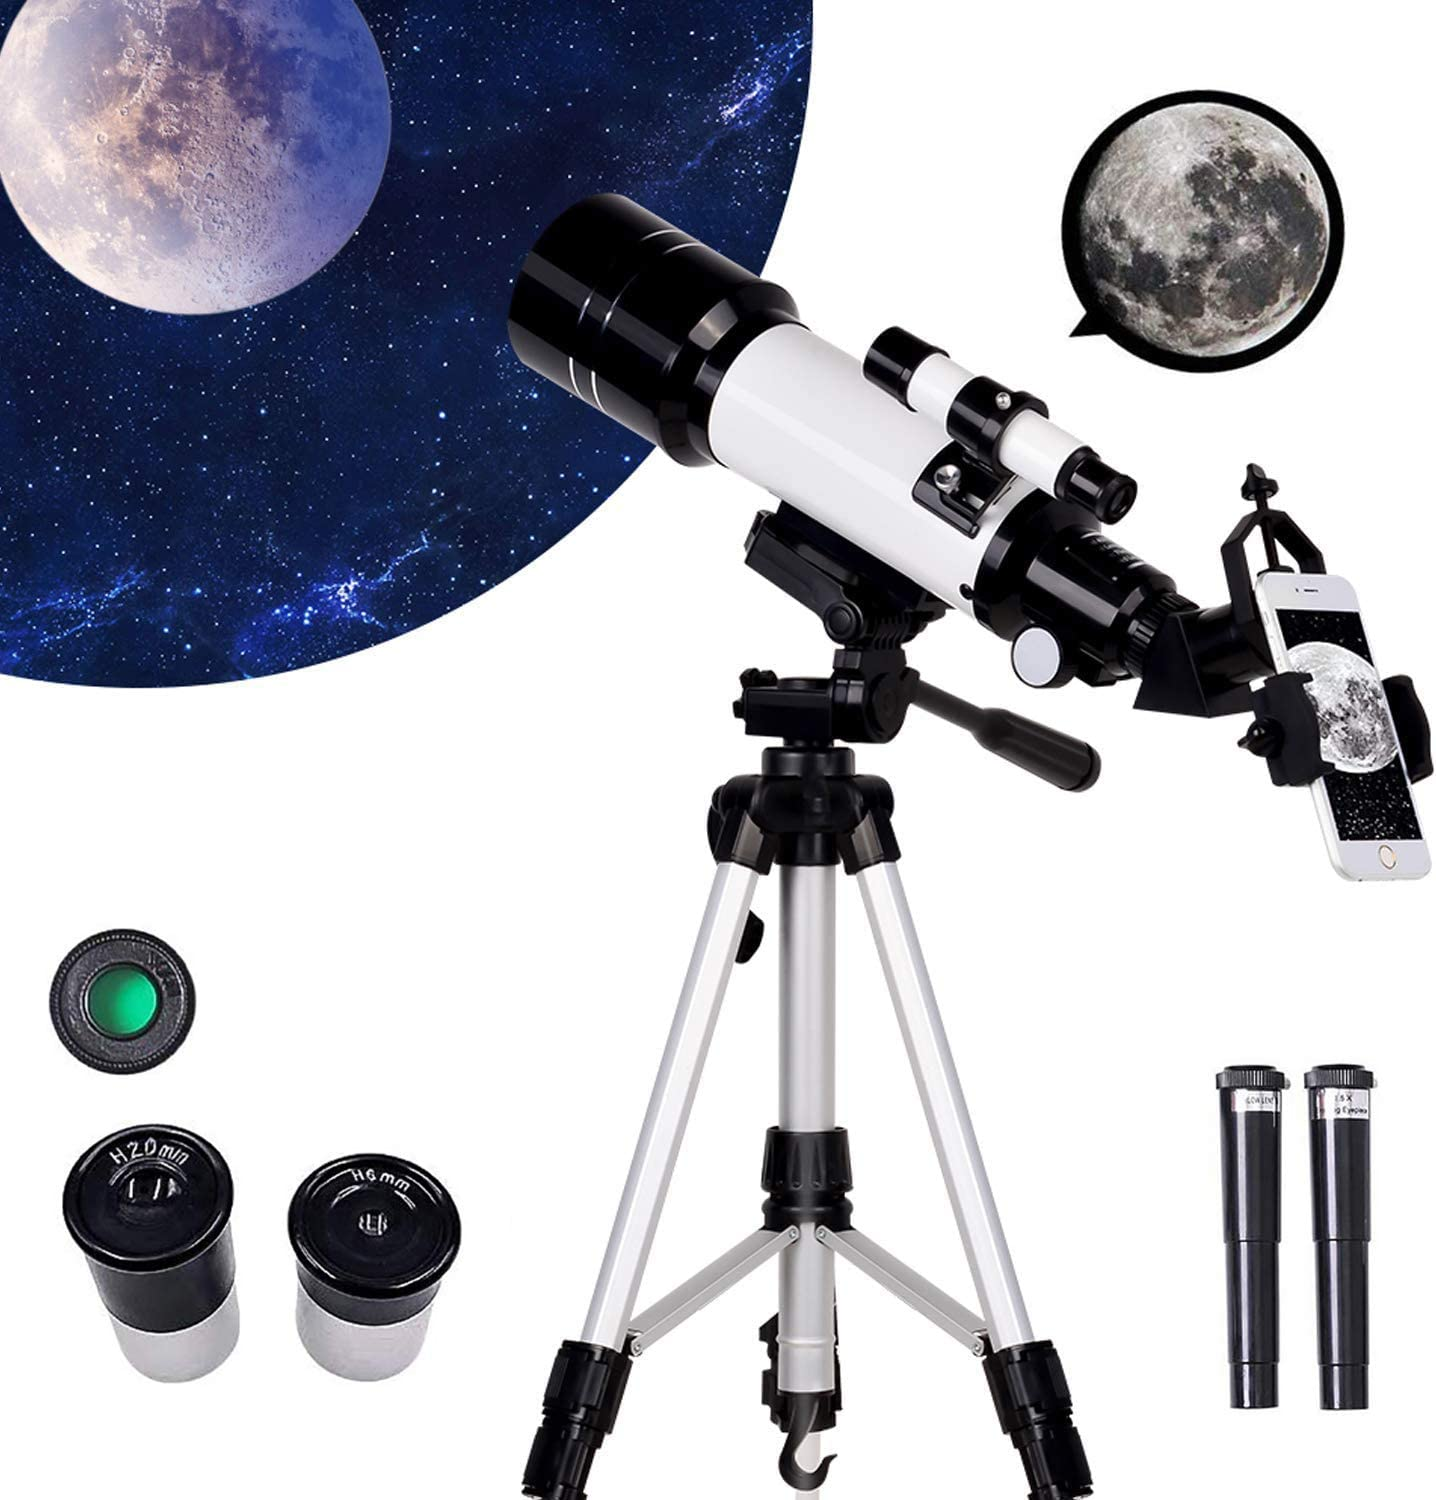 Monocular Astronomical 信憑 Refracting Telescope Adults Kids 全商品オープニング価格 for Be